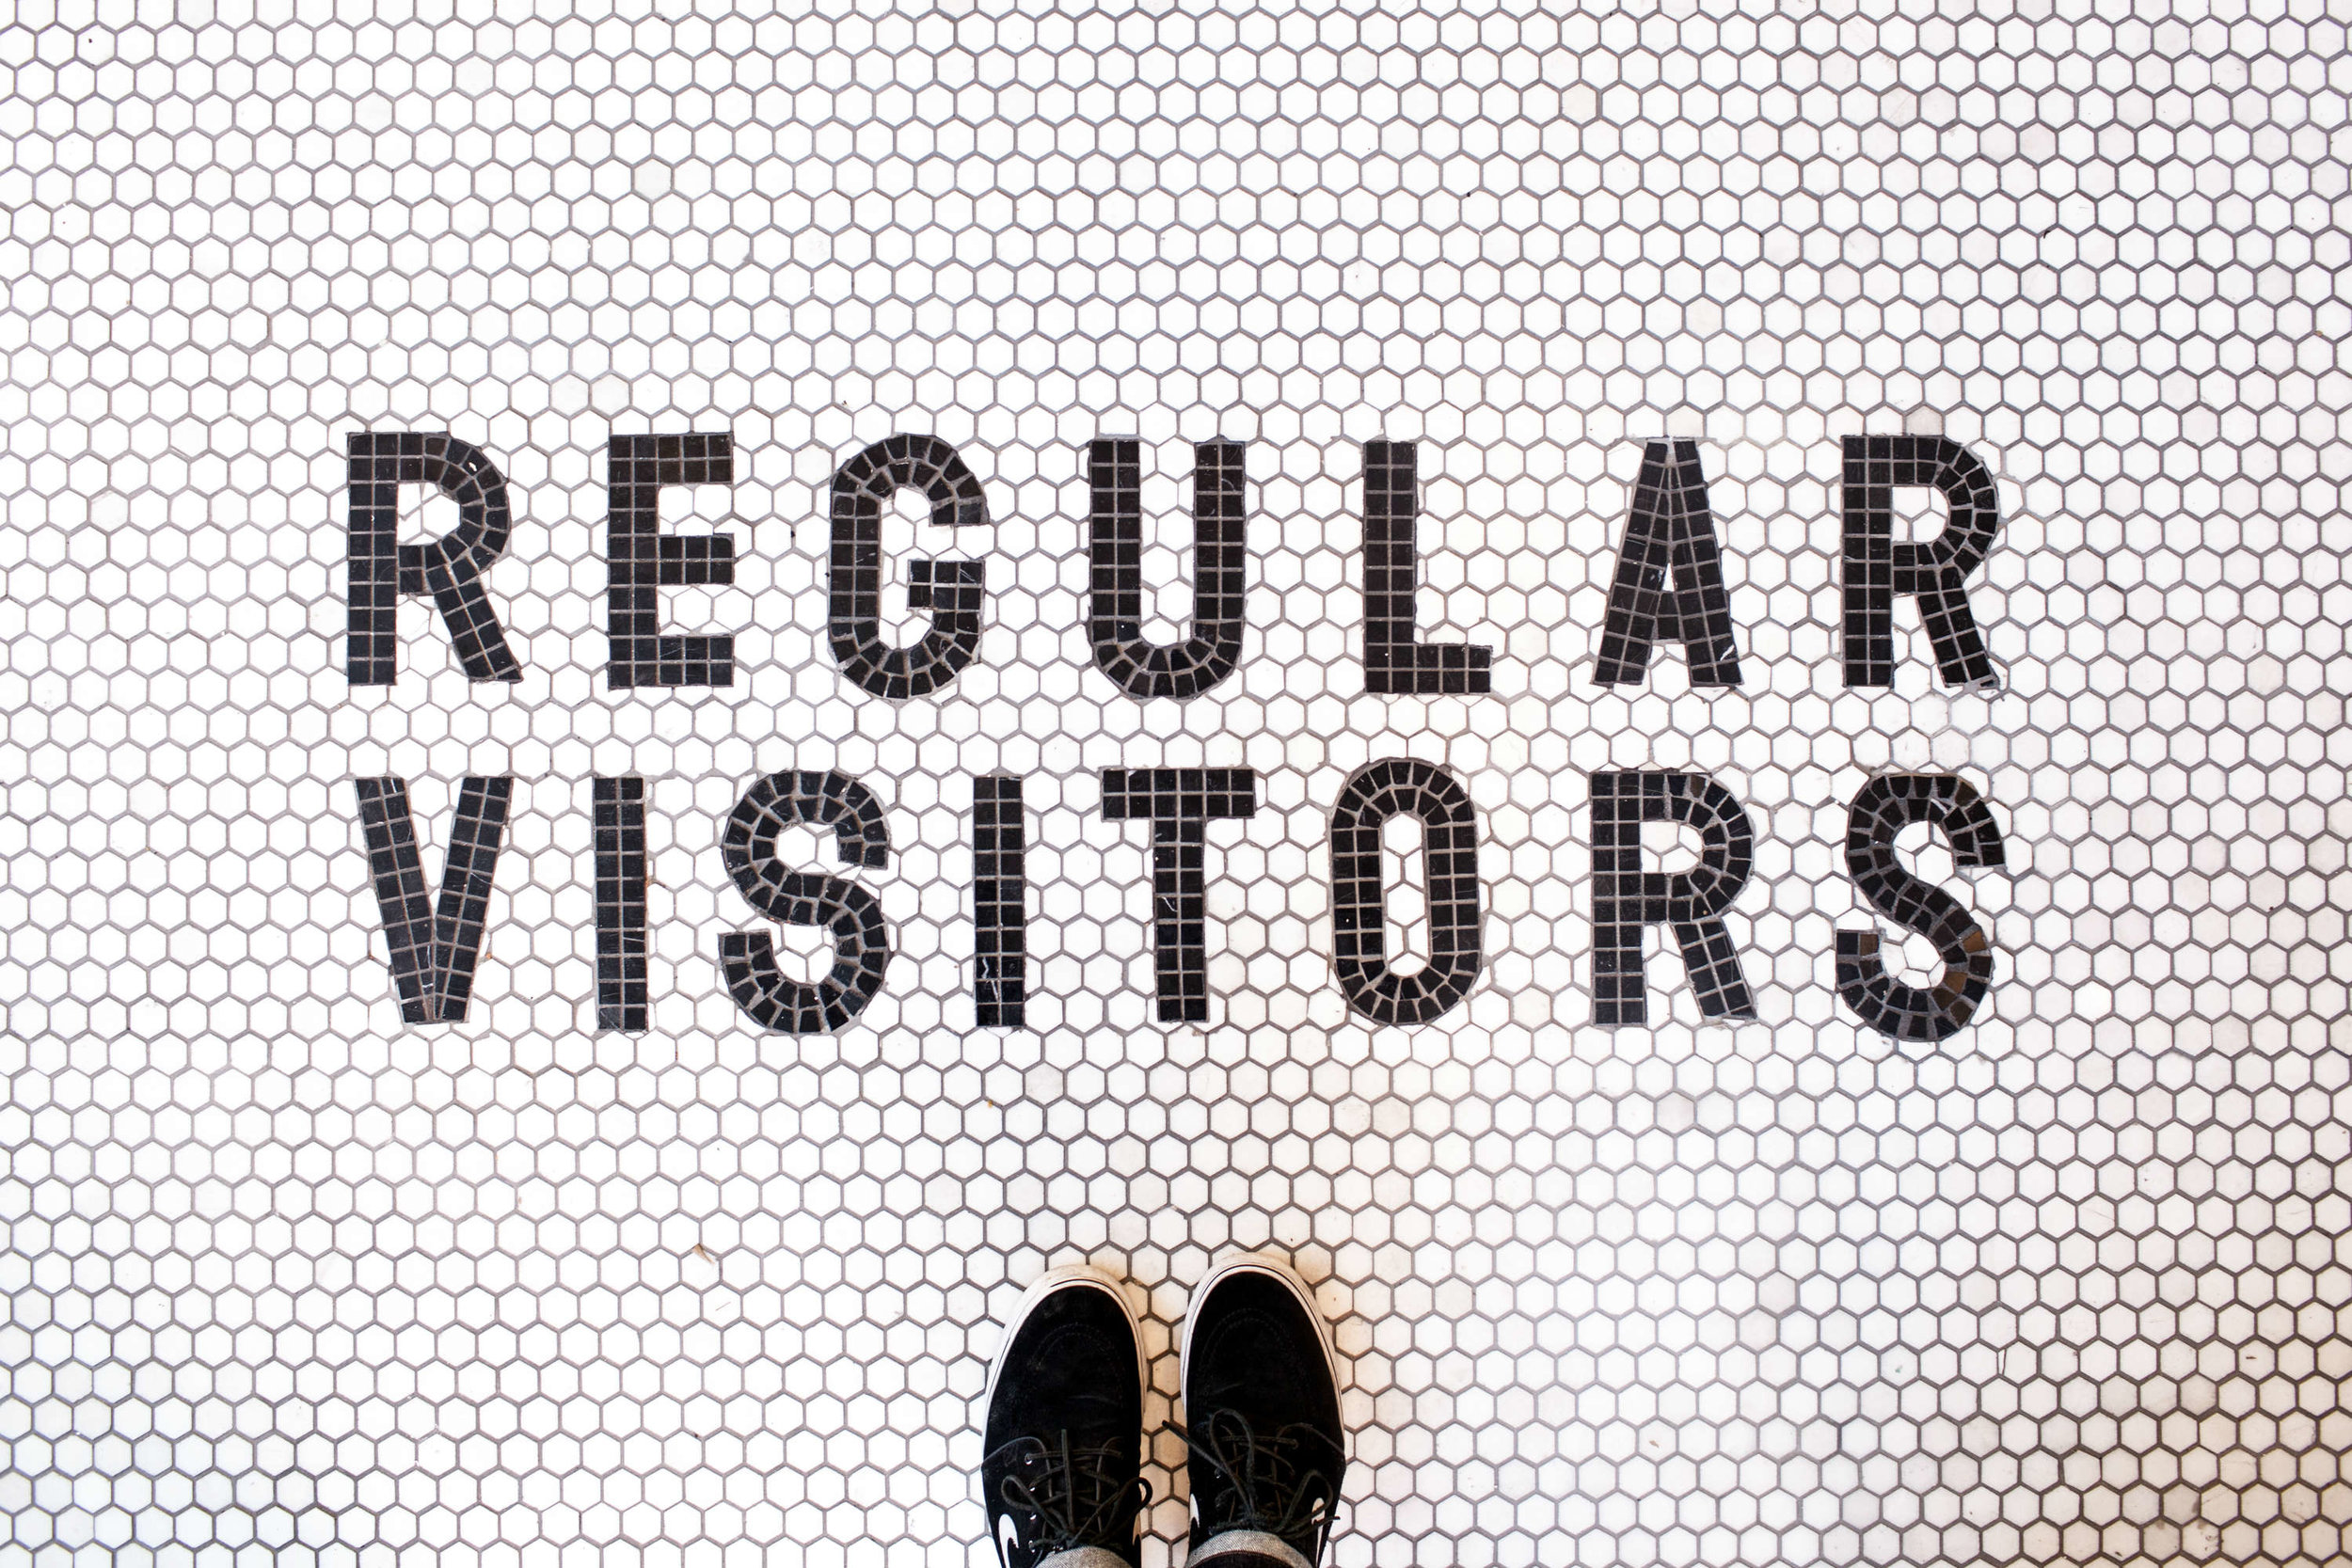 Ph: The beautiful tiles at Regular Visitors